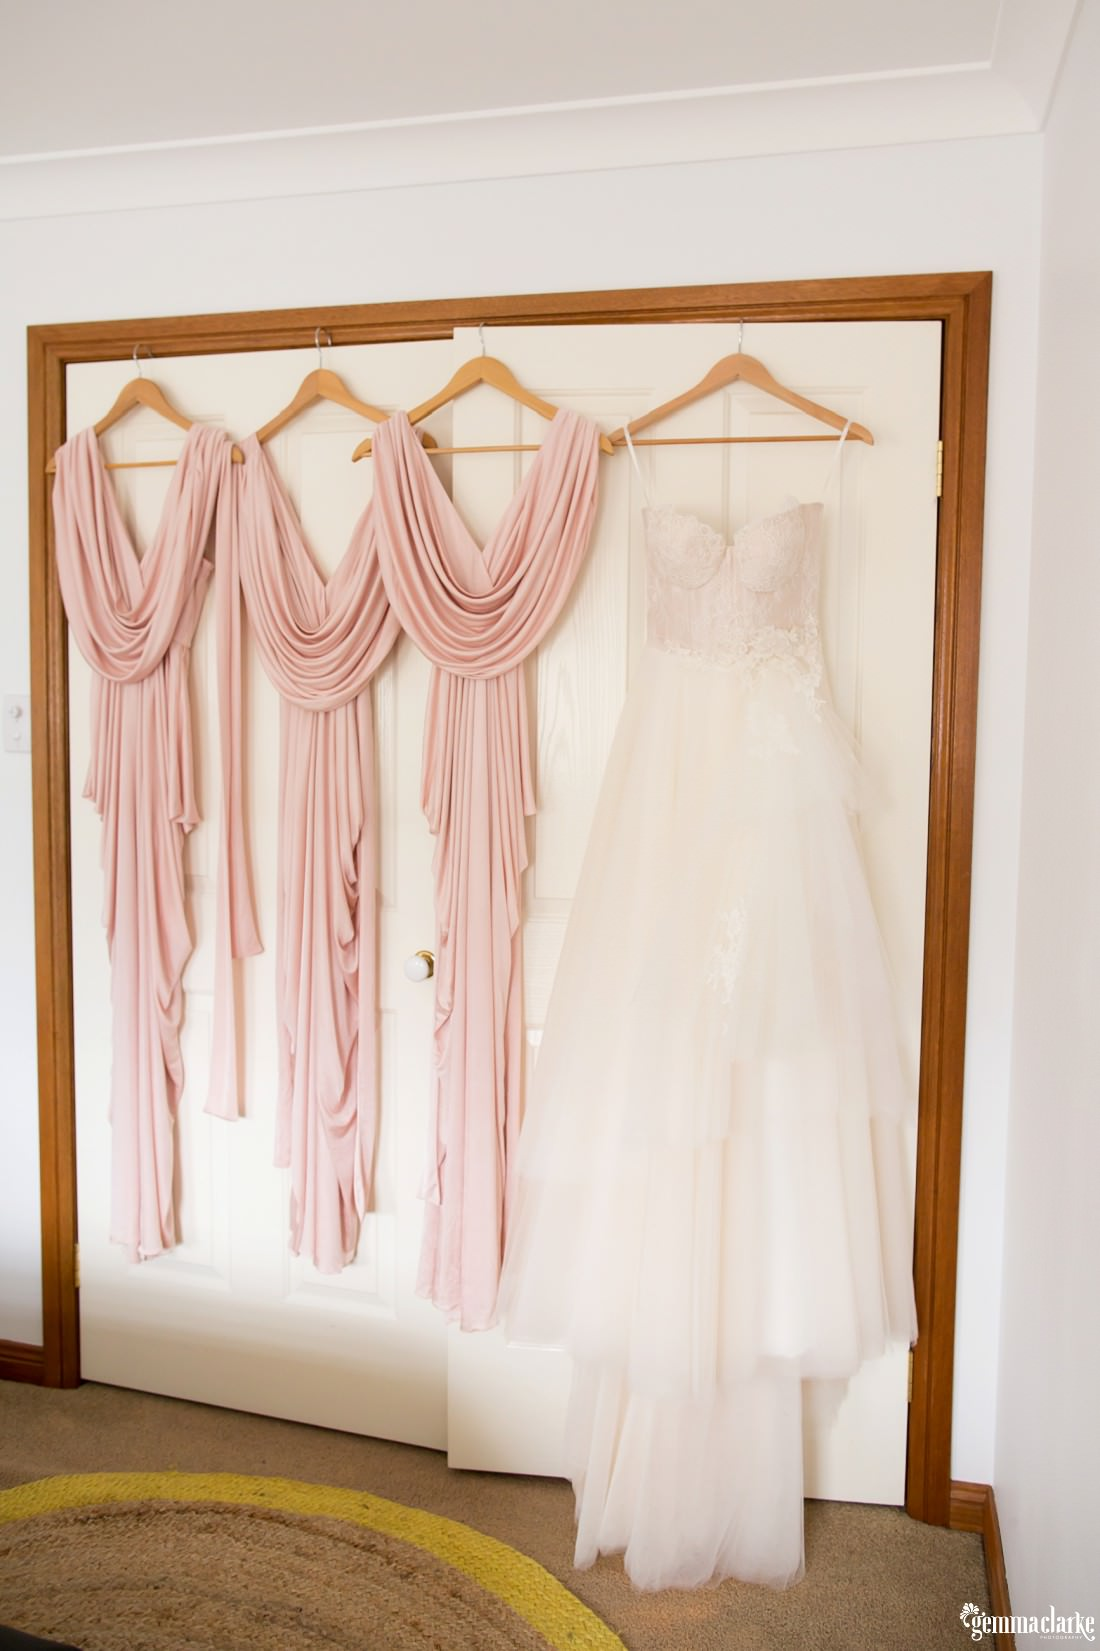 A white bridal gown and three blush pink bridesmaids dresses on hangers